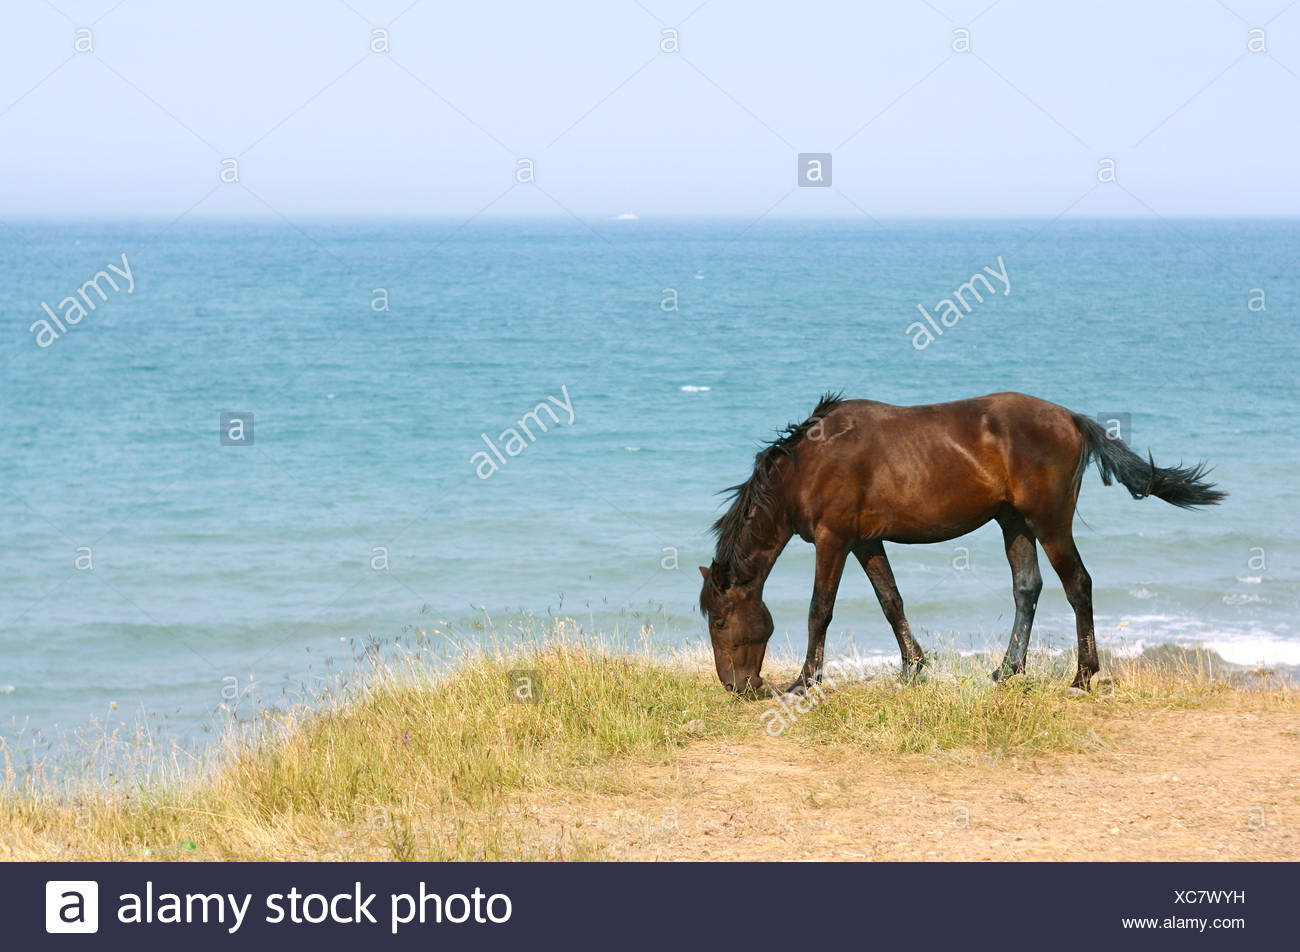 Horse on the beach - Stock Image